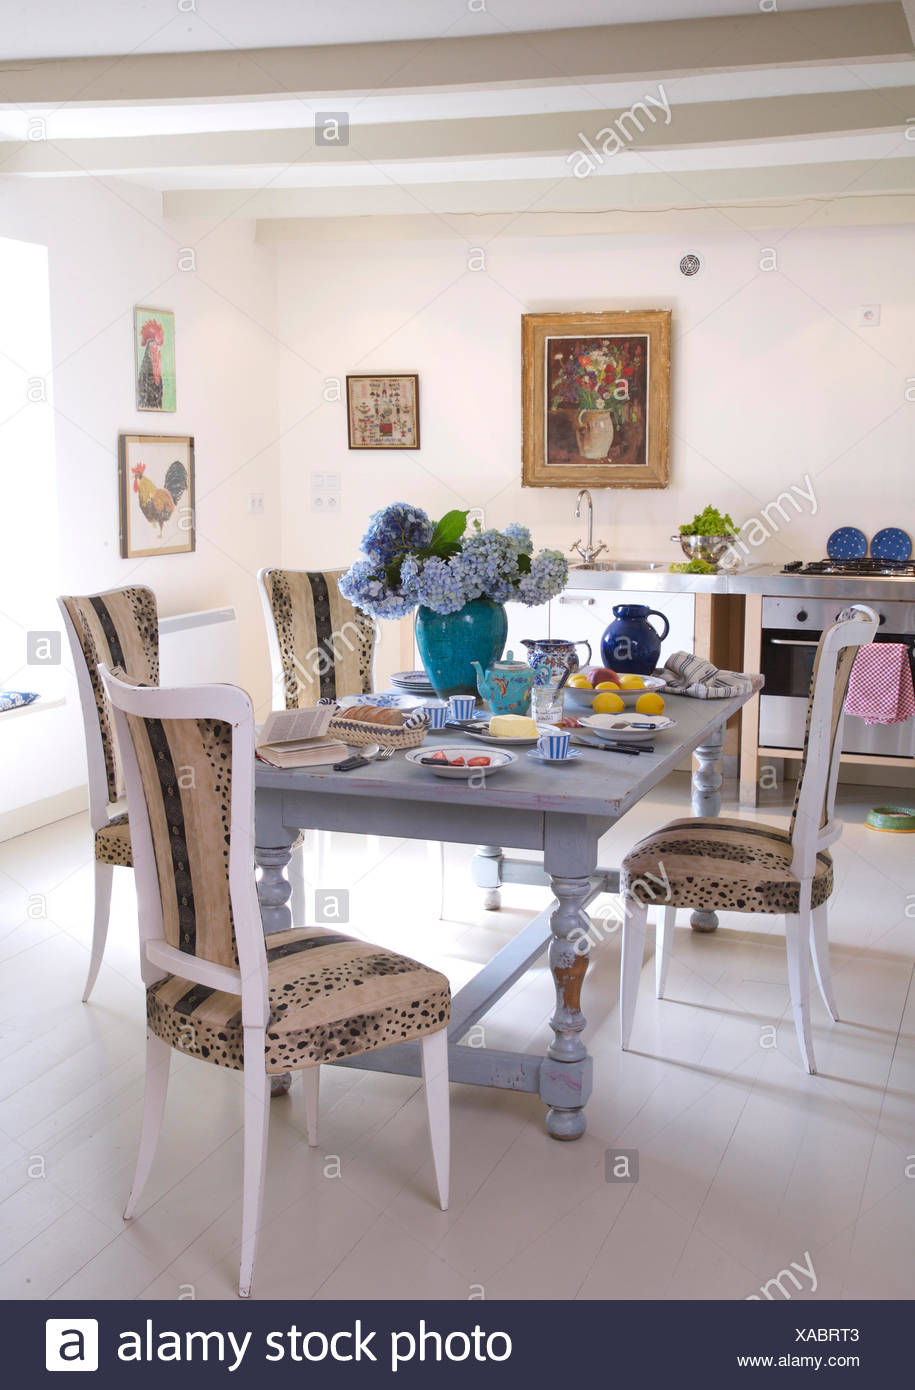 Upholstered white painted chairs at painted blue table in ...